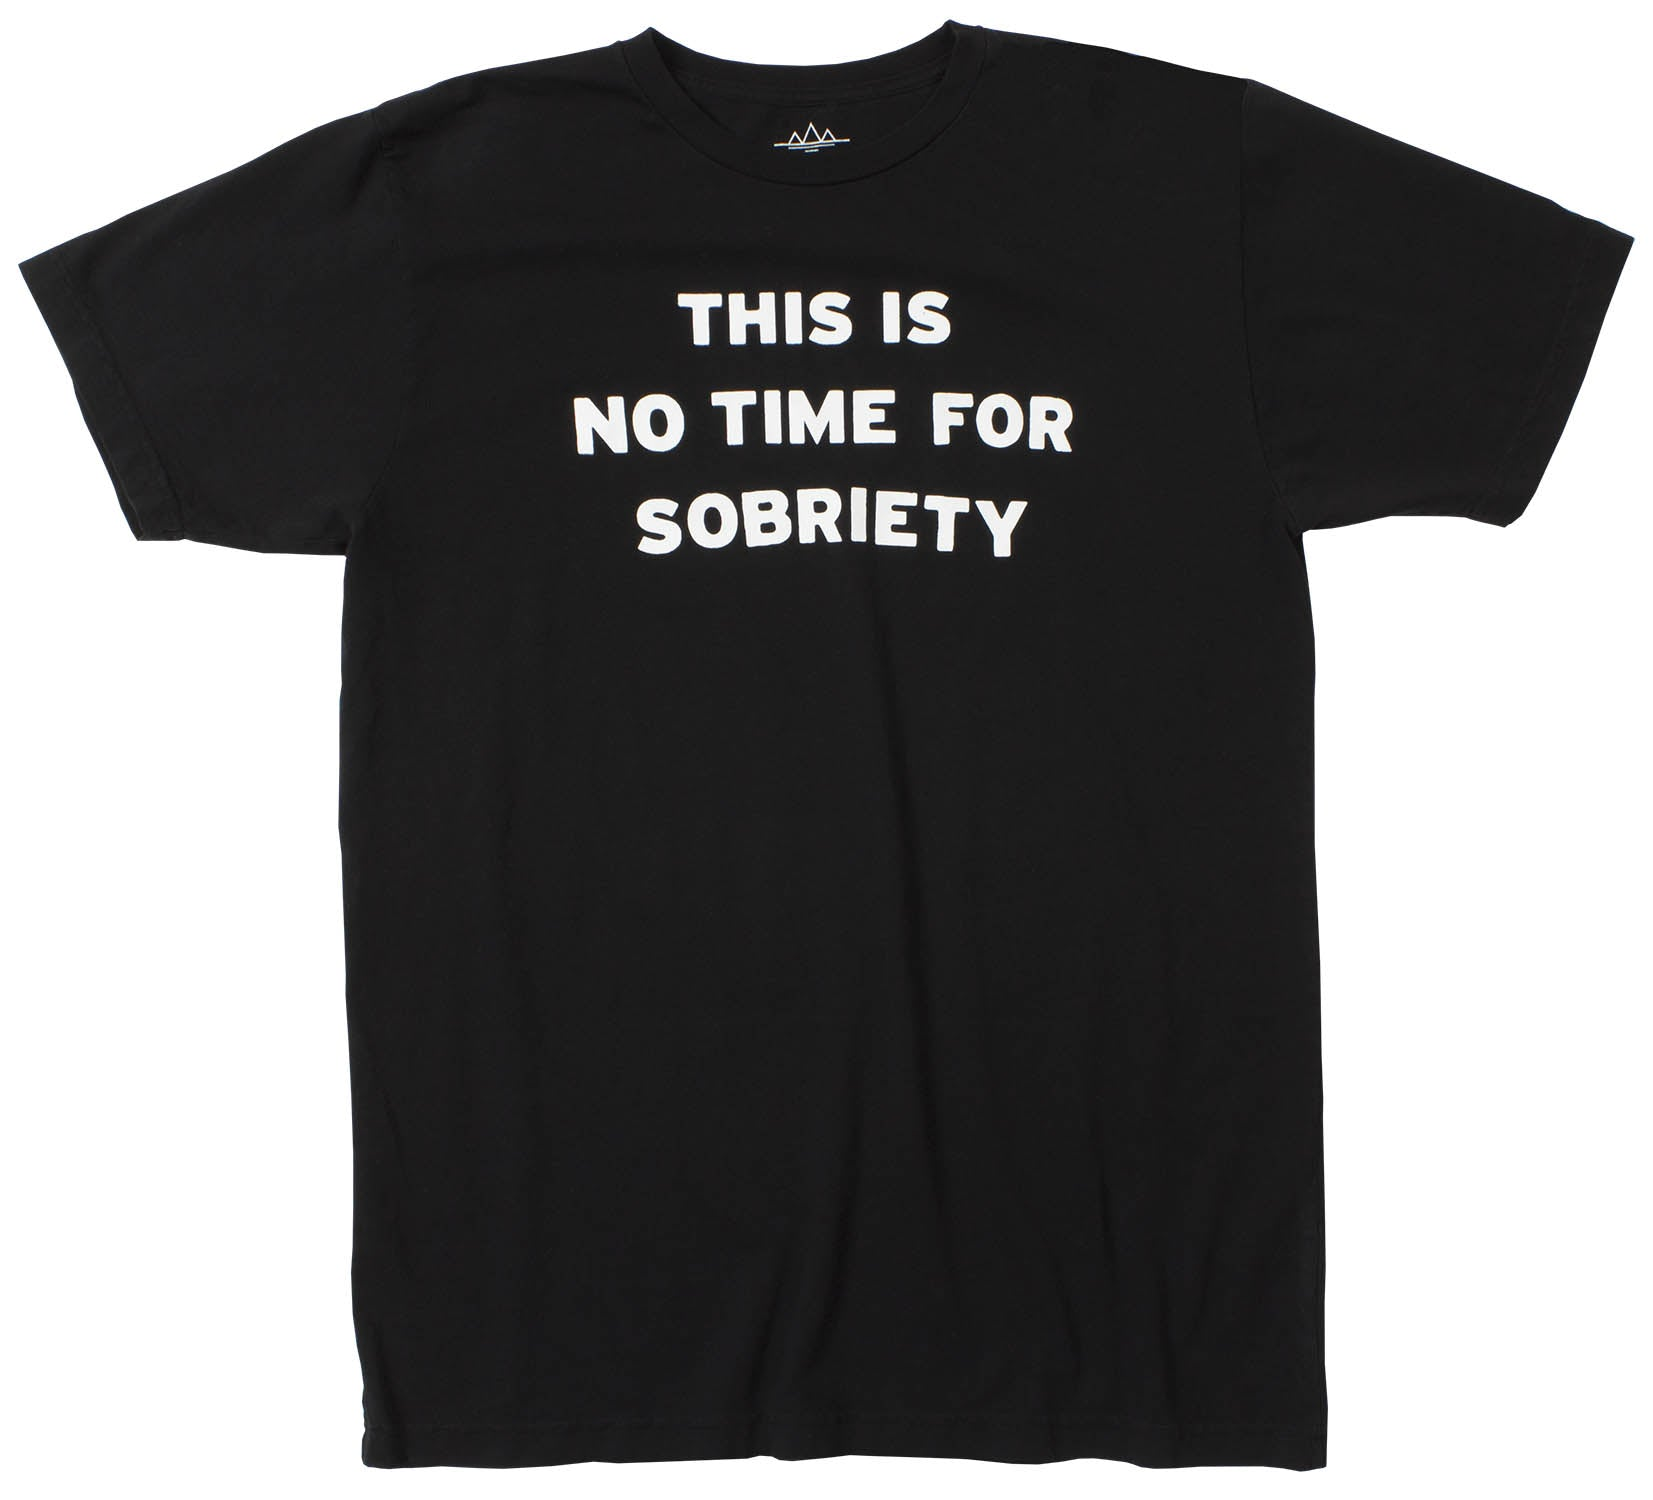 a2025f14 No Time For Sobriety Men's Funny Black Graphic Tee by Altru Apparel